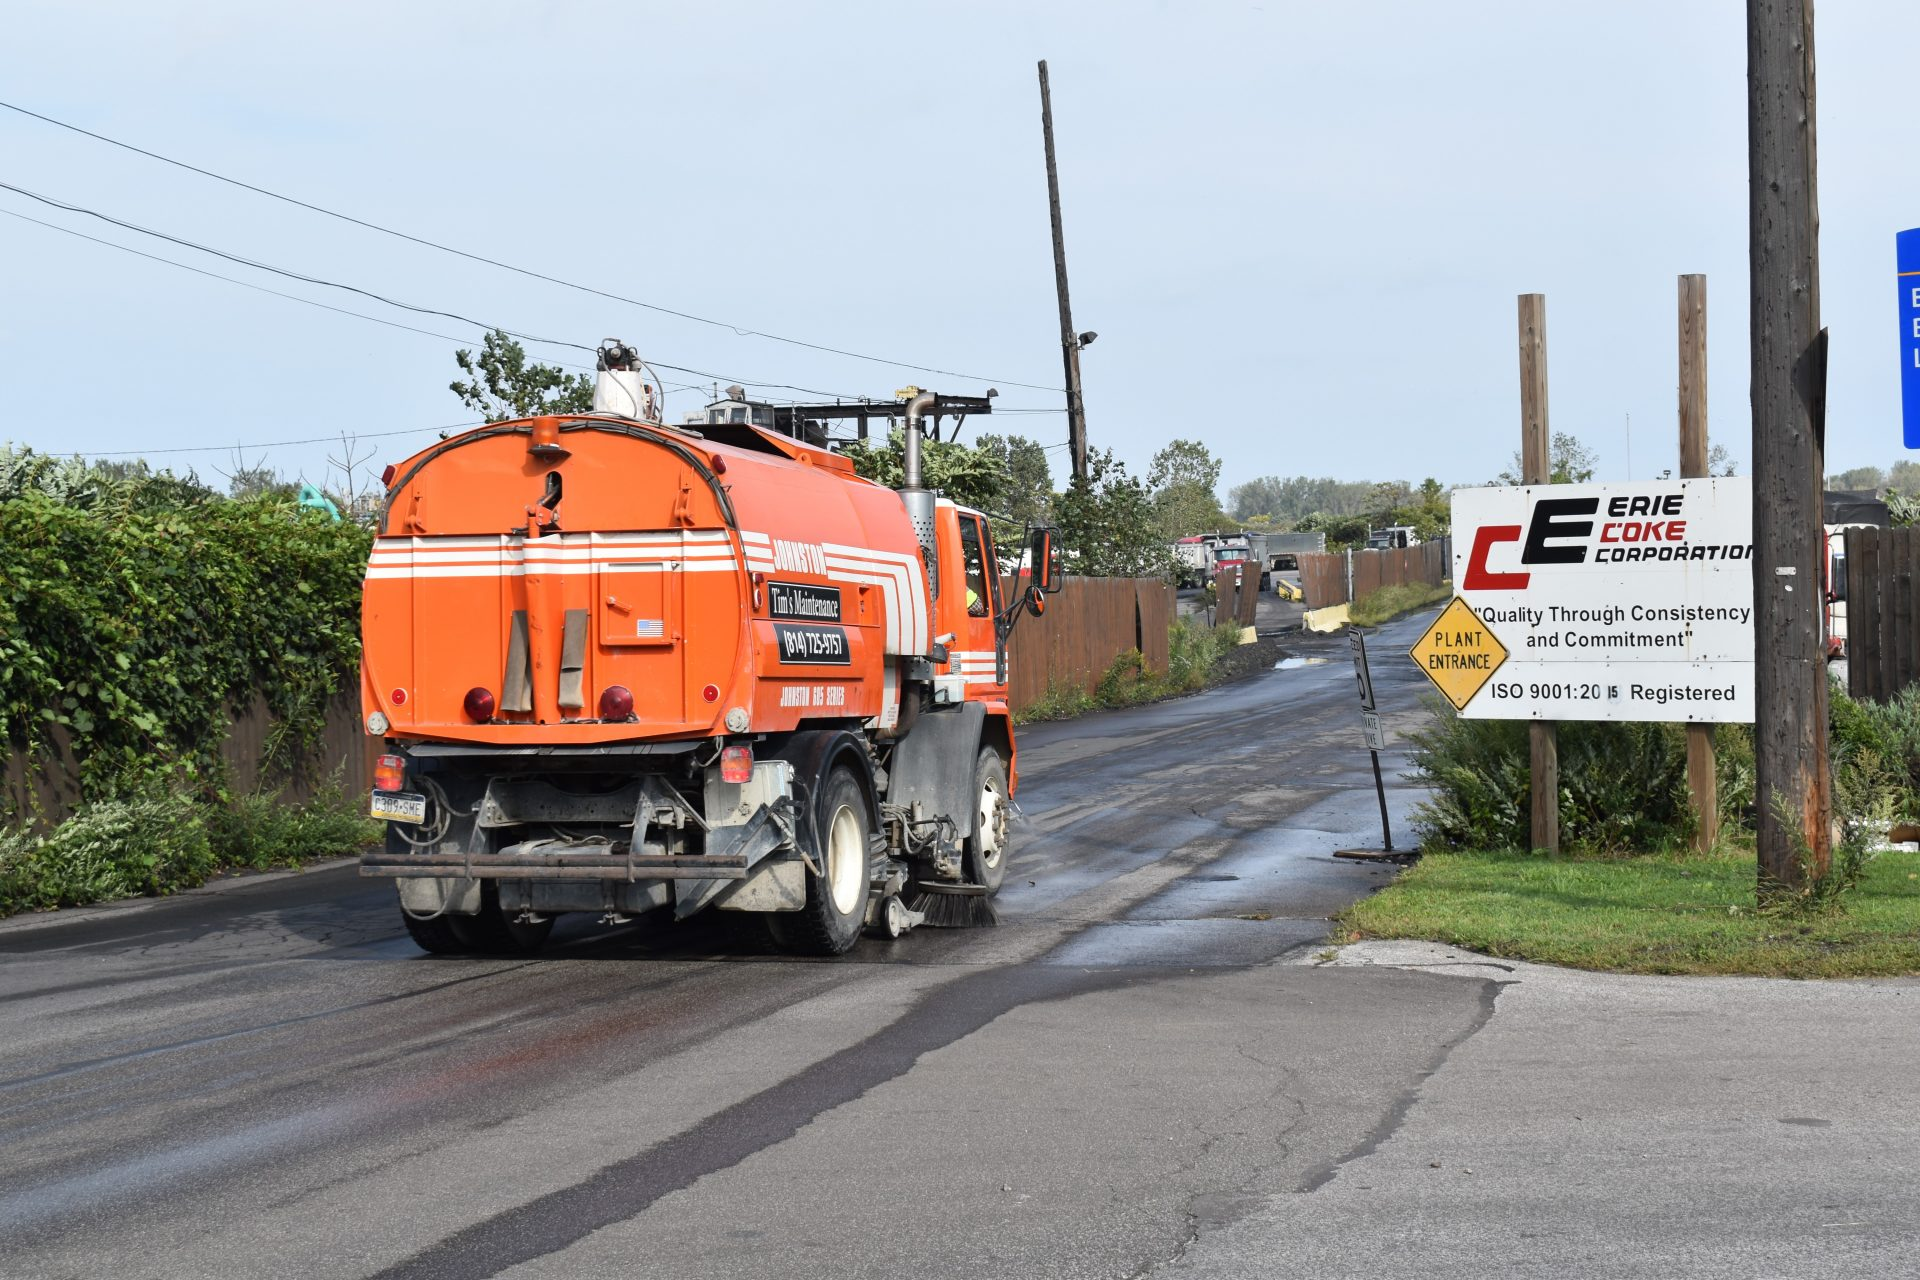 A vehicle cleans the road leading into Erie Coke on Sept. 13, 2019.